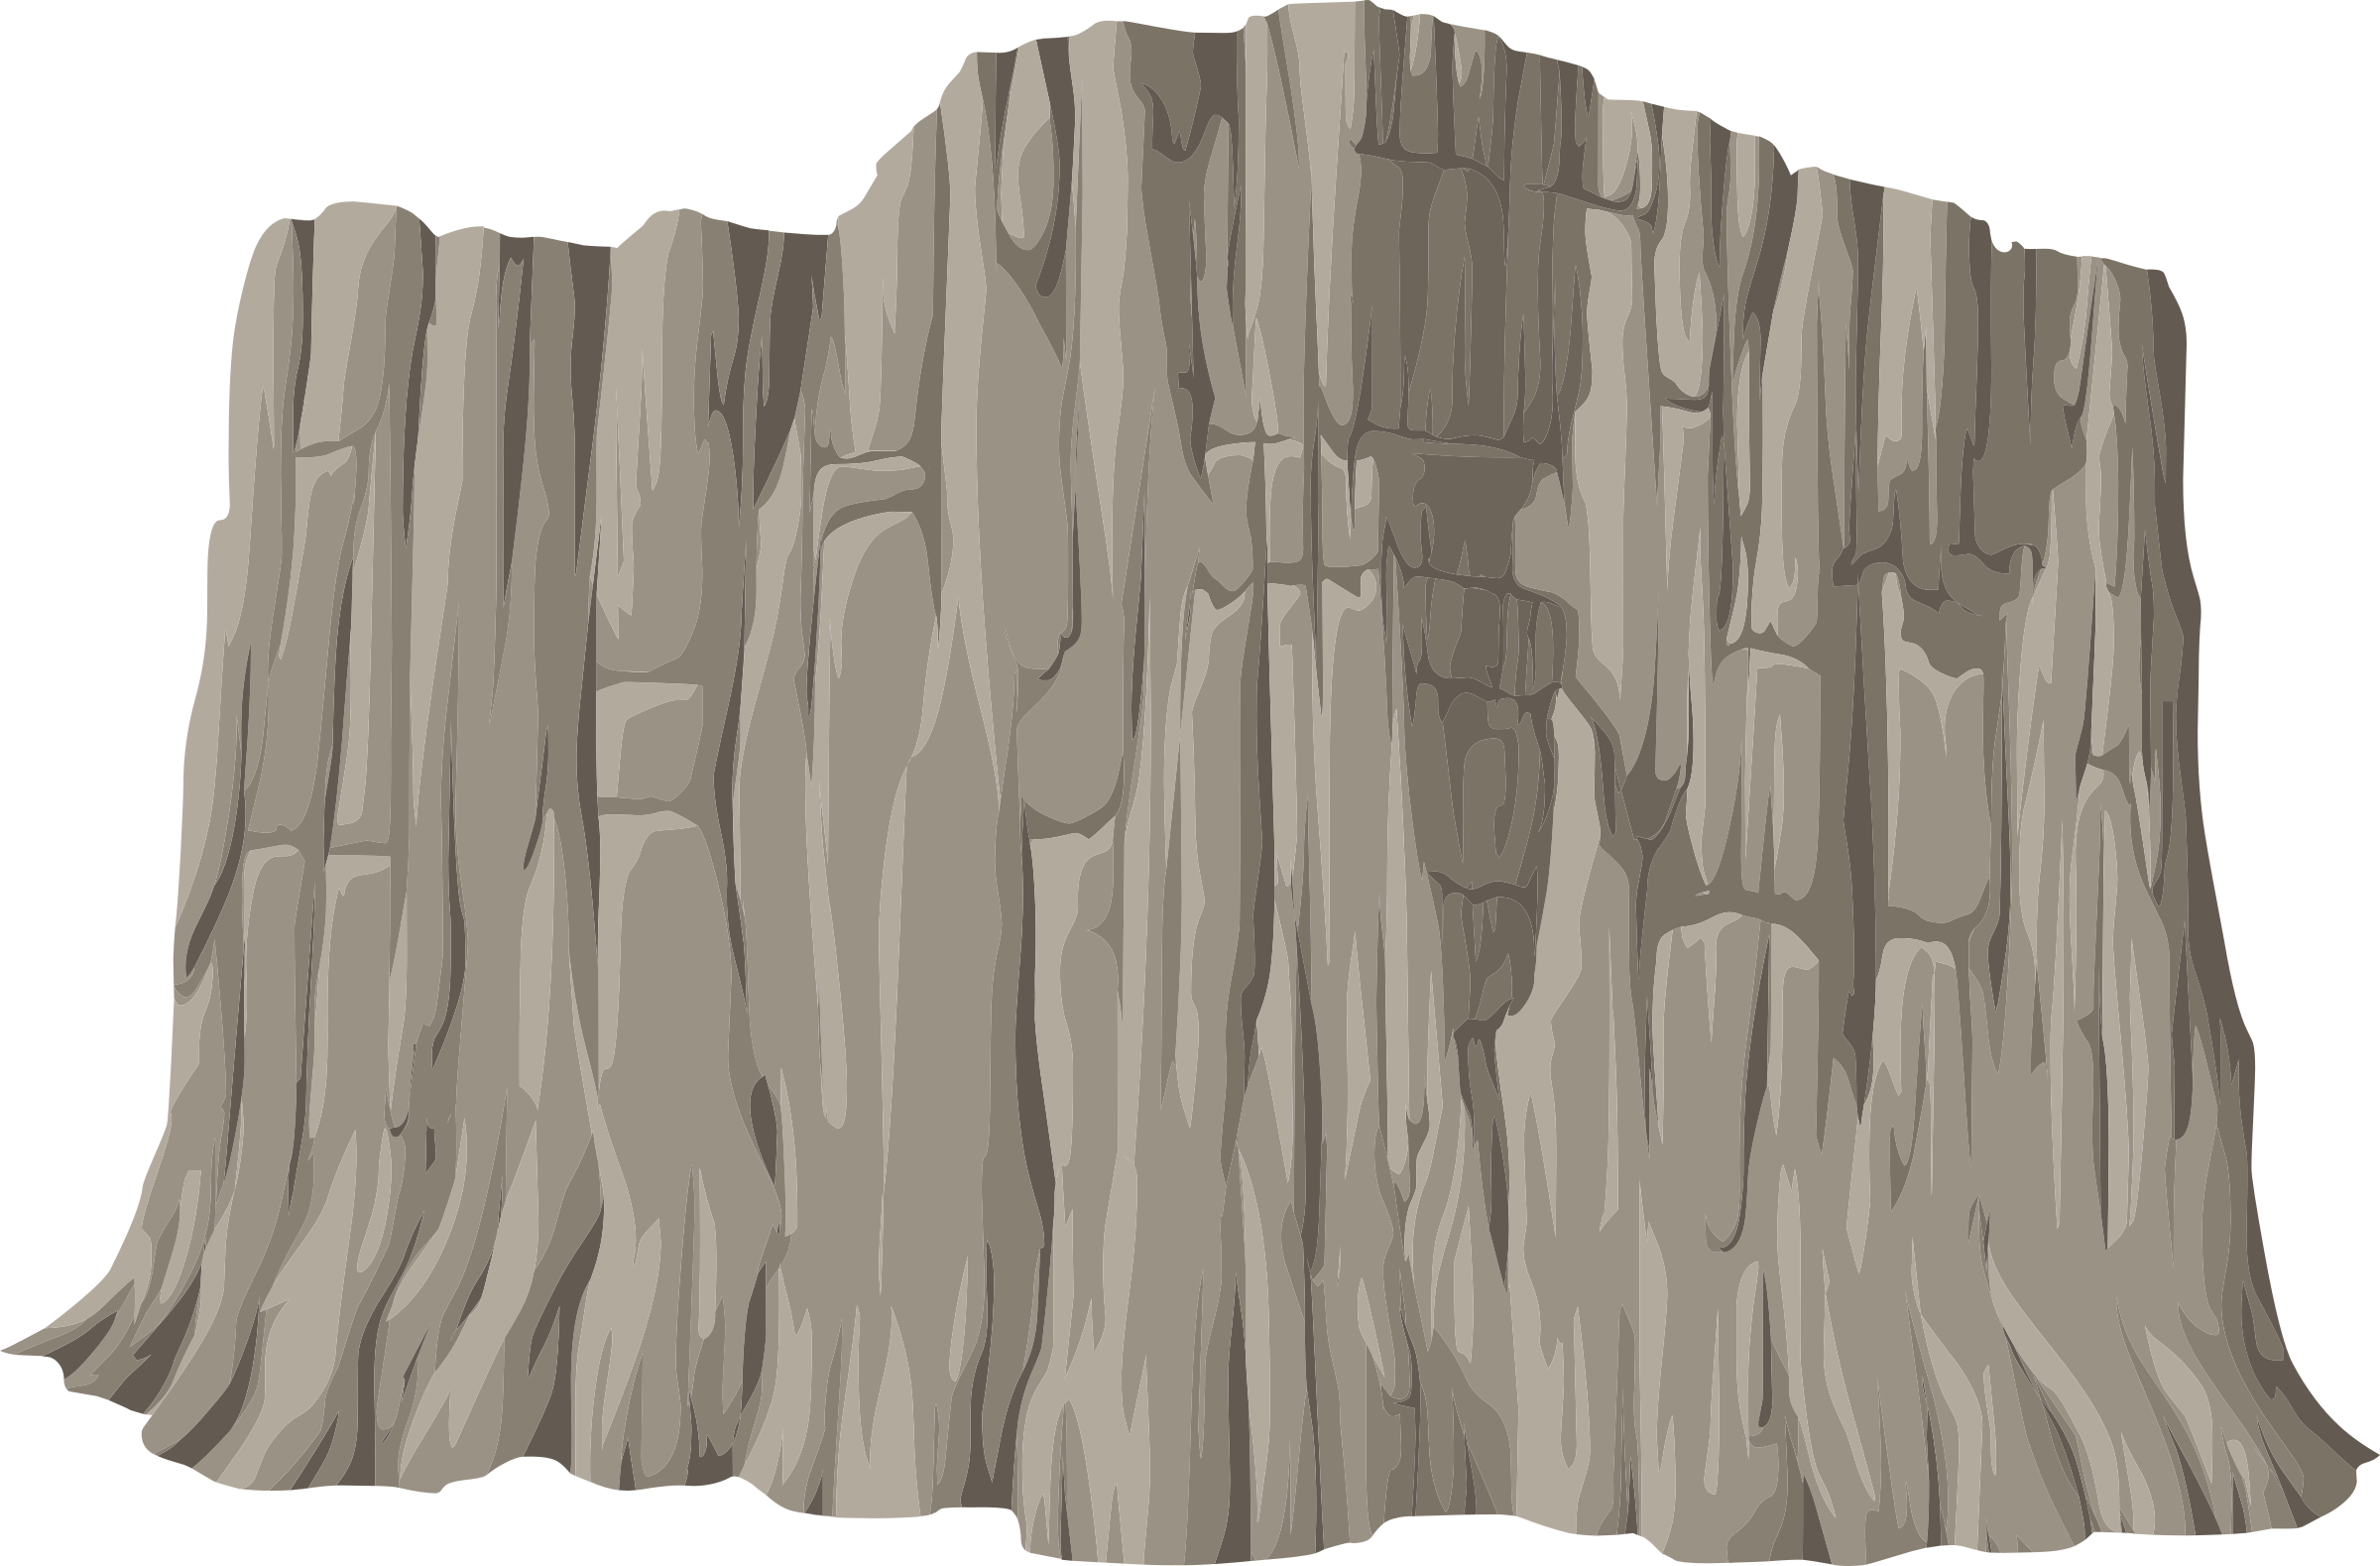 Clipart alpine landscape cliff face mountaineering 01a al1